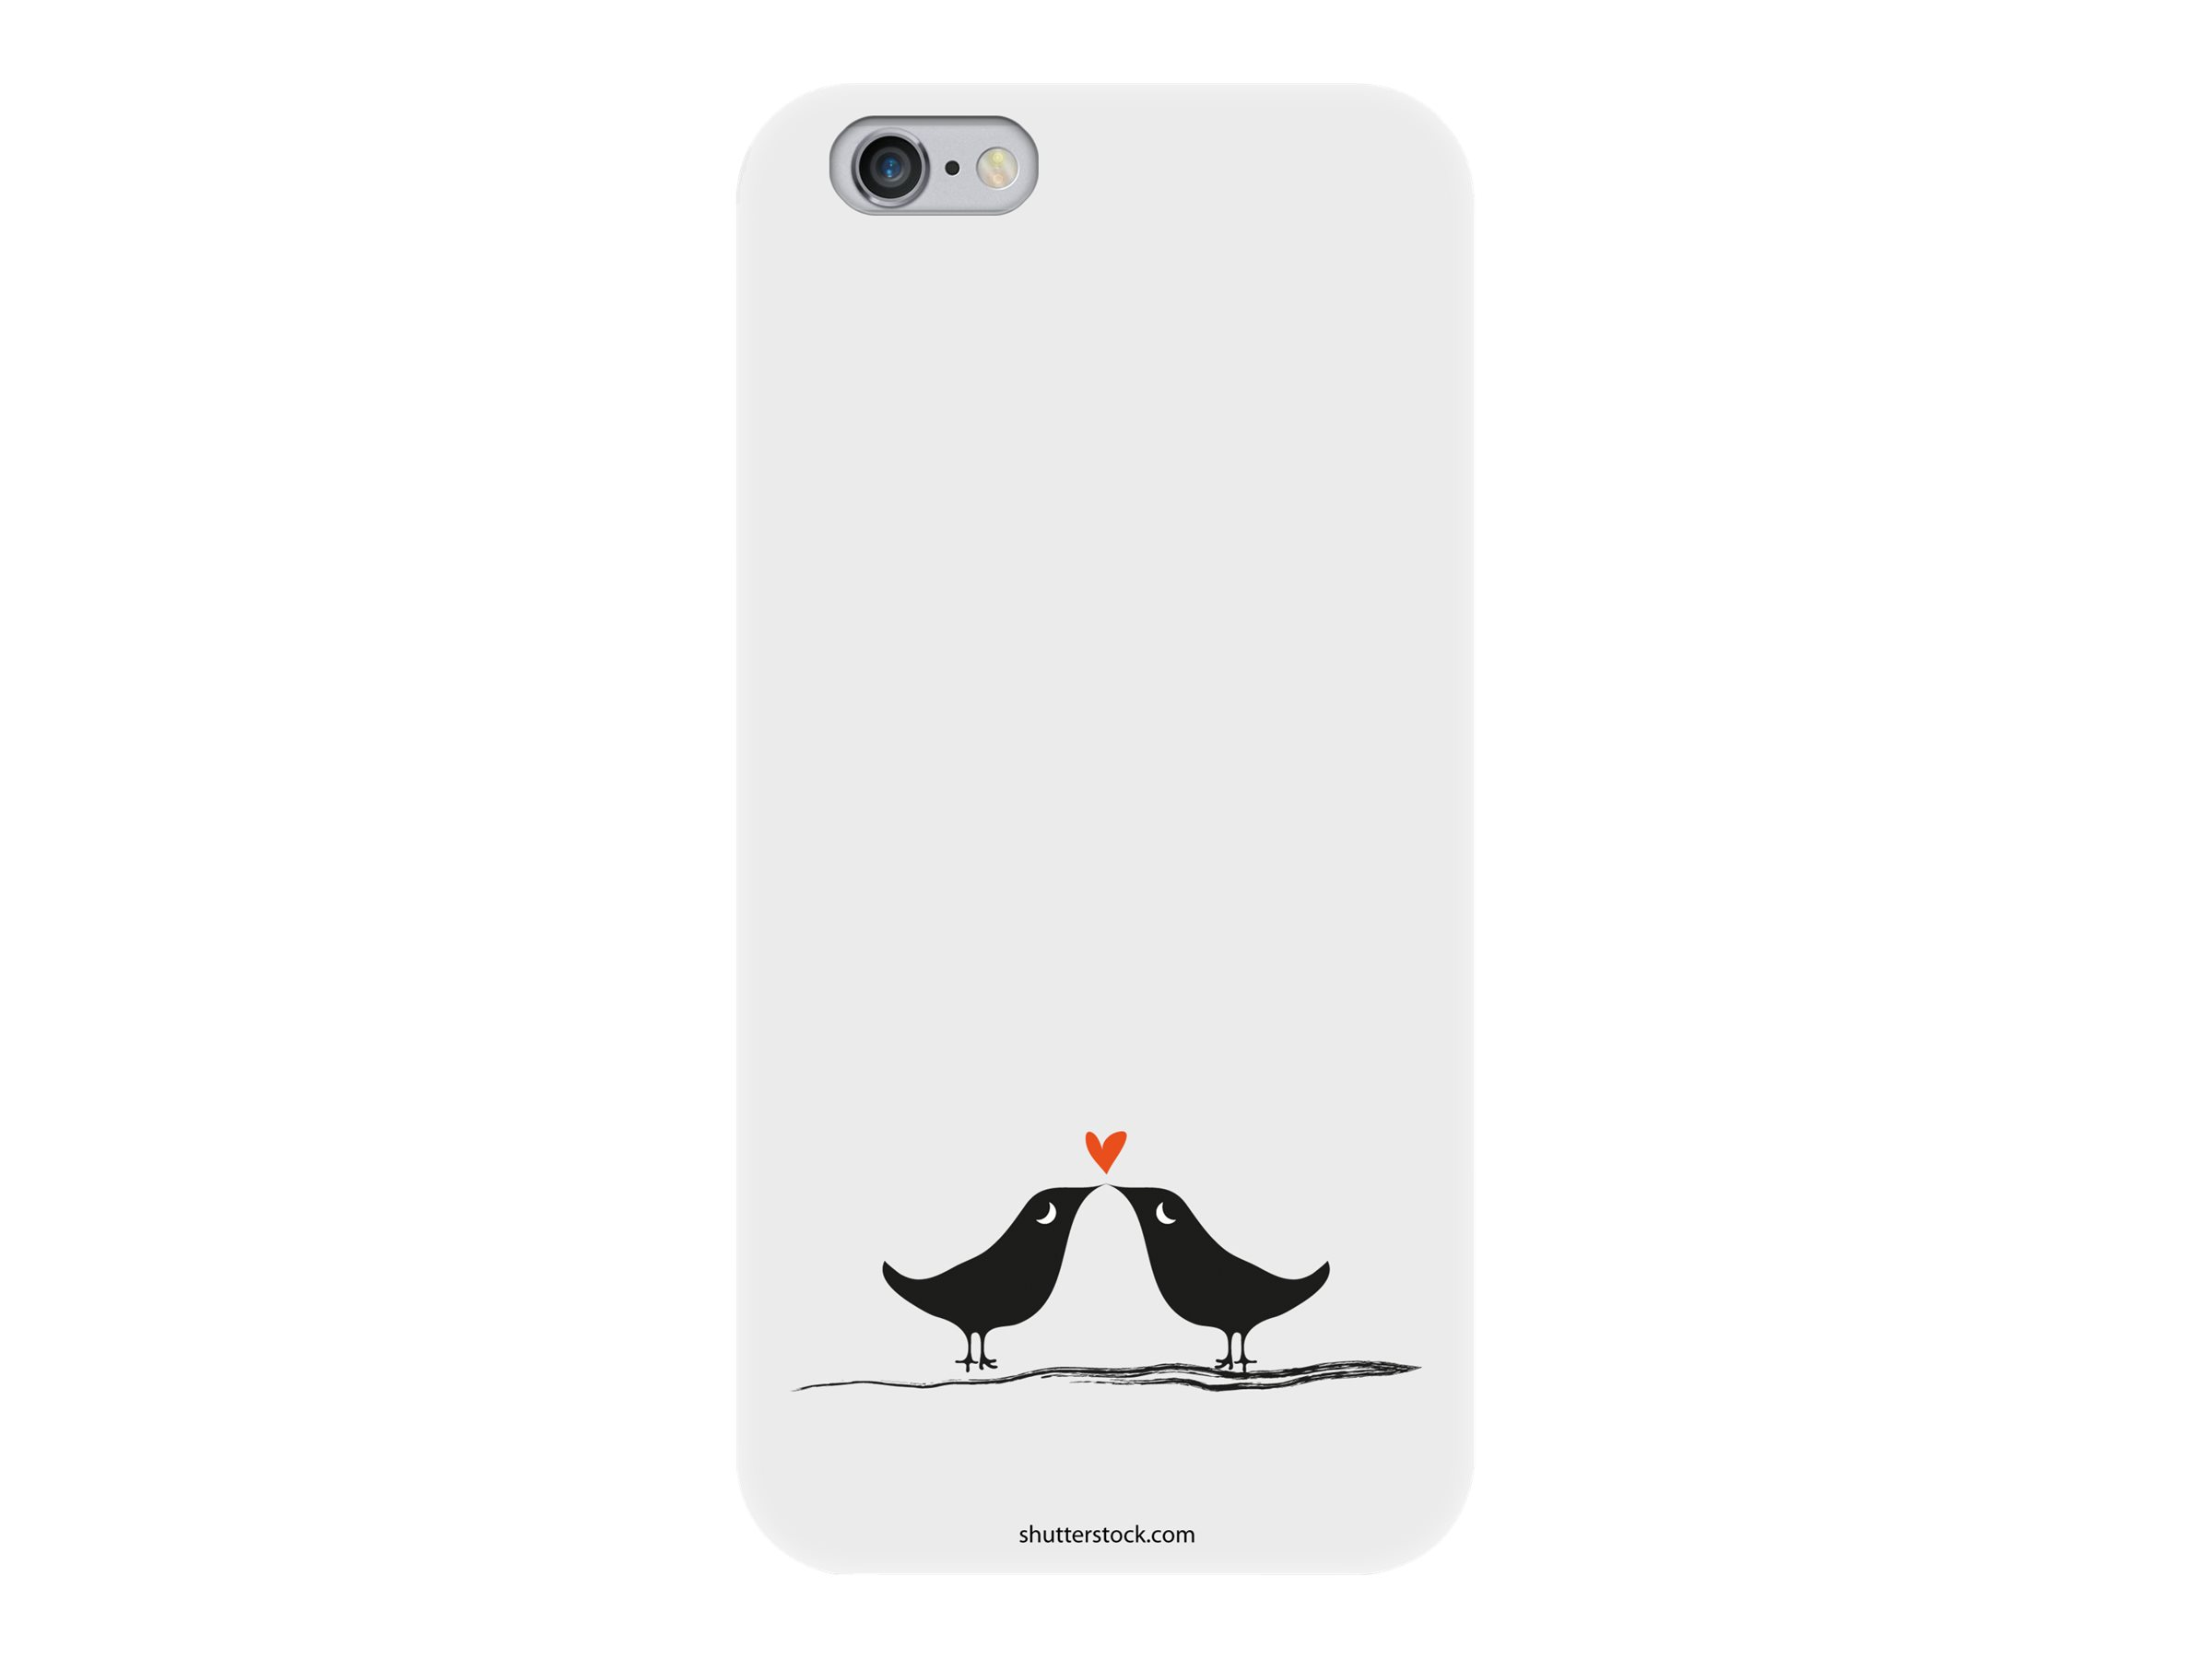 Muvit love birds - Coque de protection pour iPhone 6 - noir, blanc